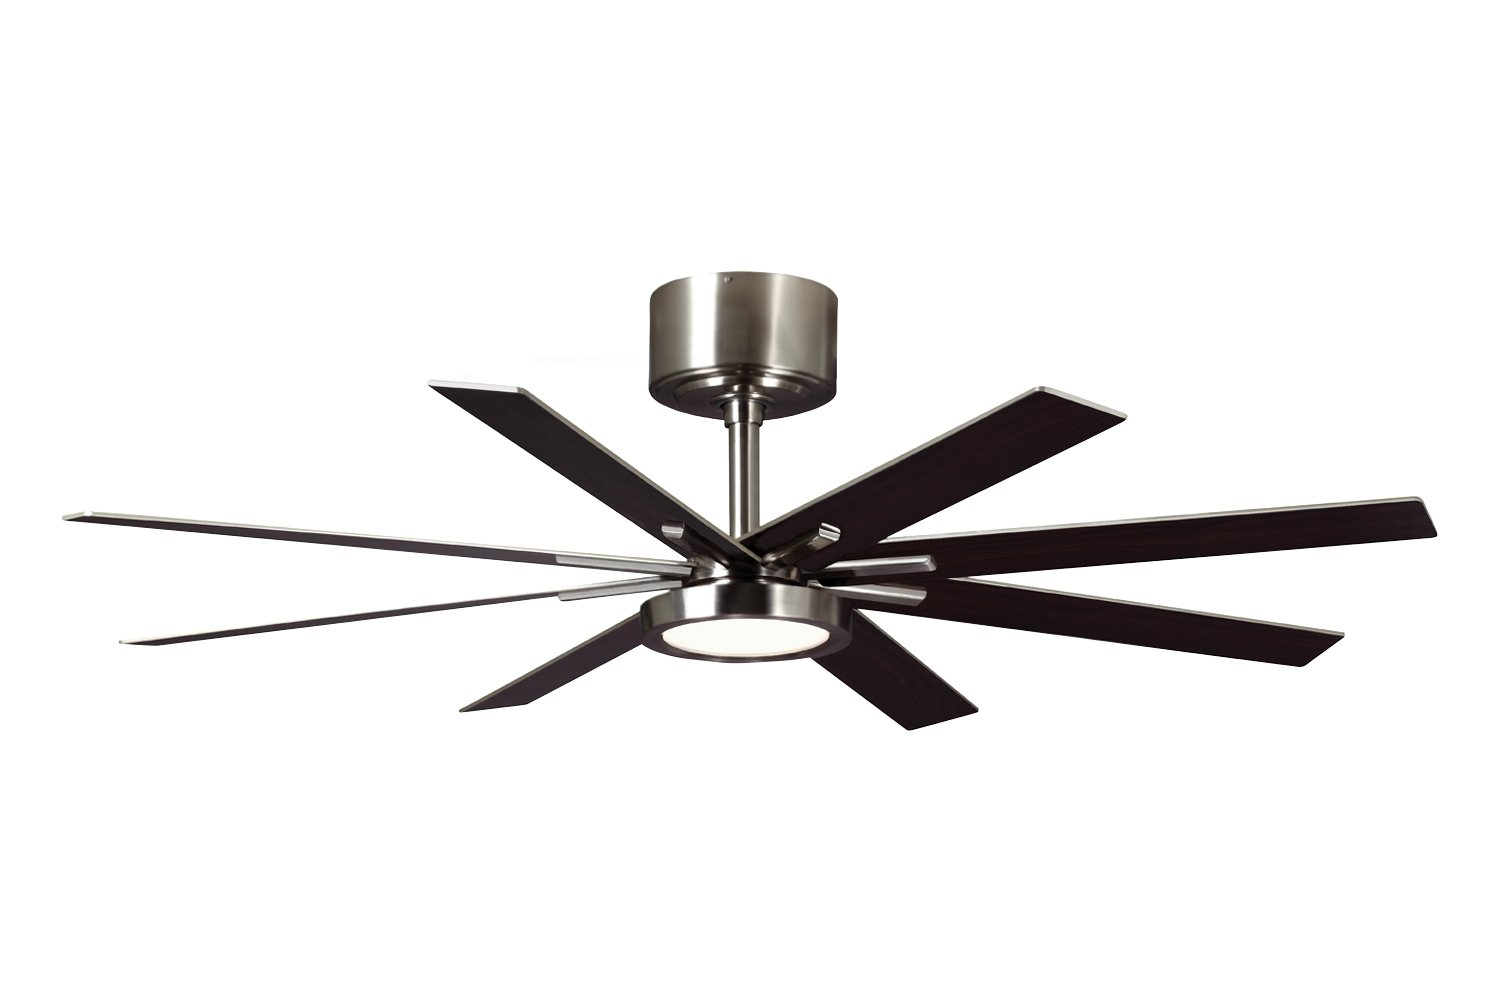 Monte carlo 8eer60bsd empire 60 ceiling fan brushed steel monte carlo 8eer60bsd empire 60 ceiling fan brushed steel amazon mozeypictures Images